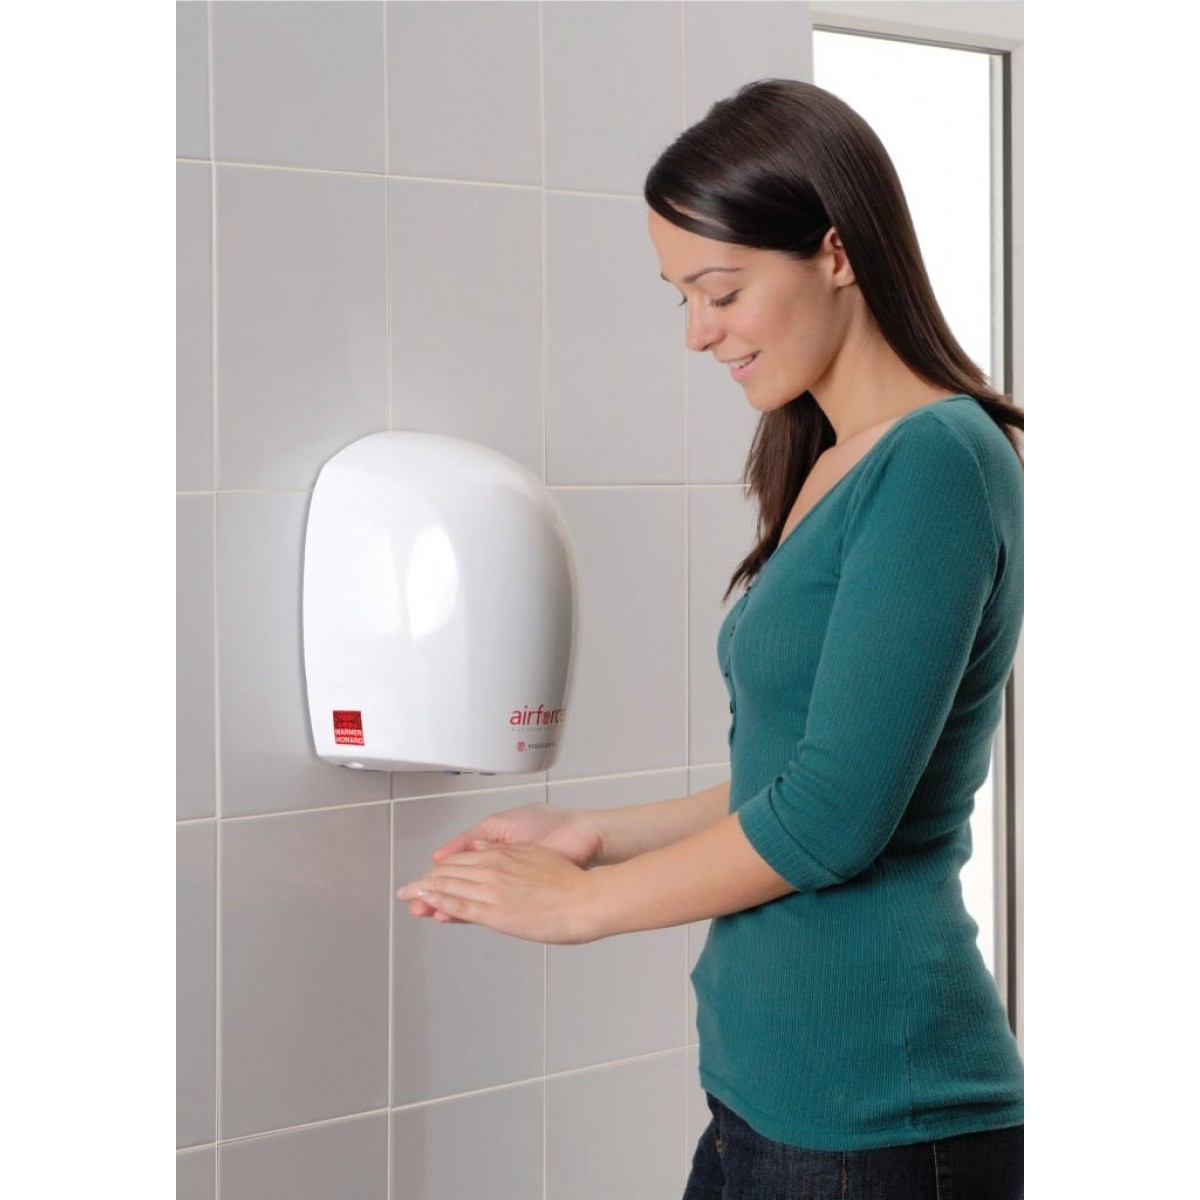 Lady using the economical Airforce Hand dryer in white